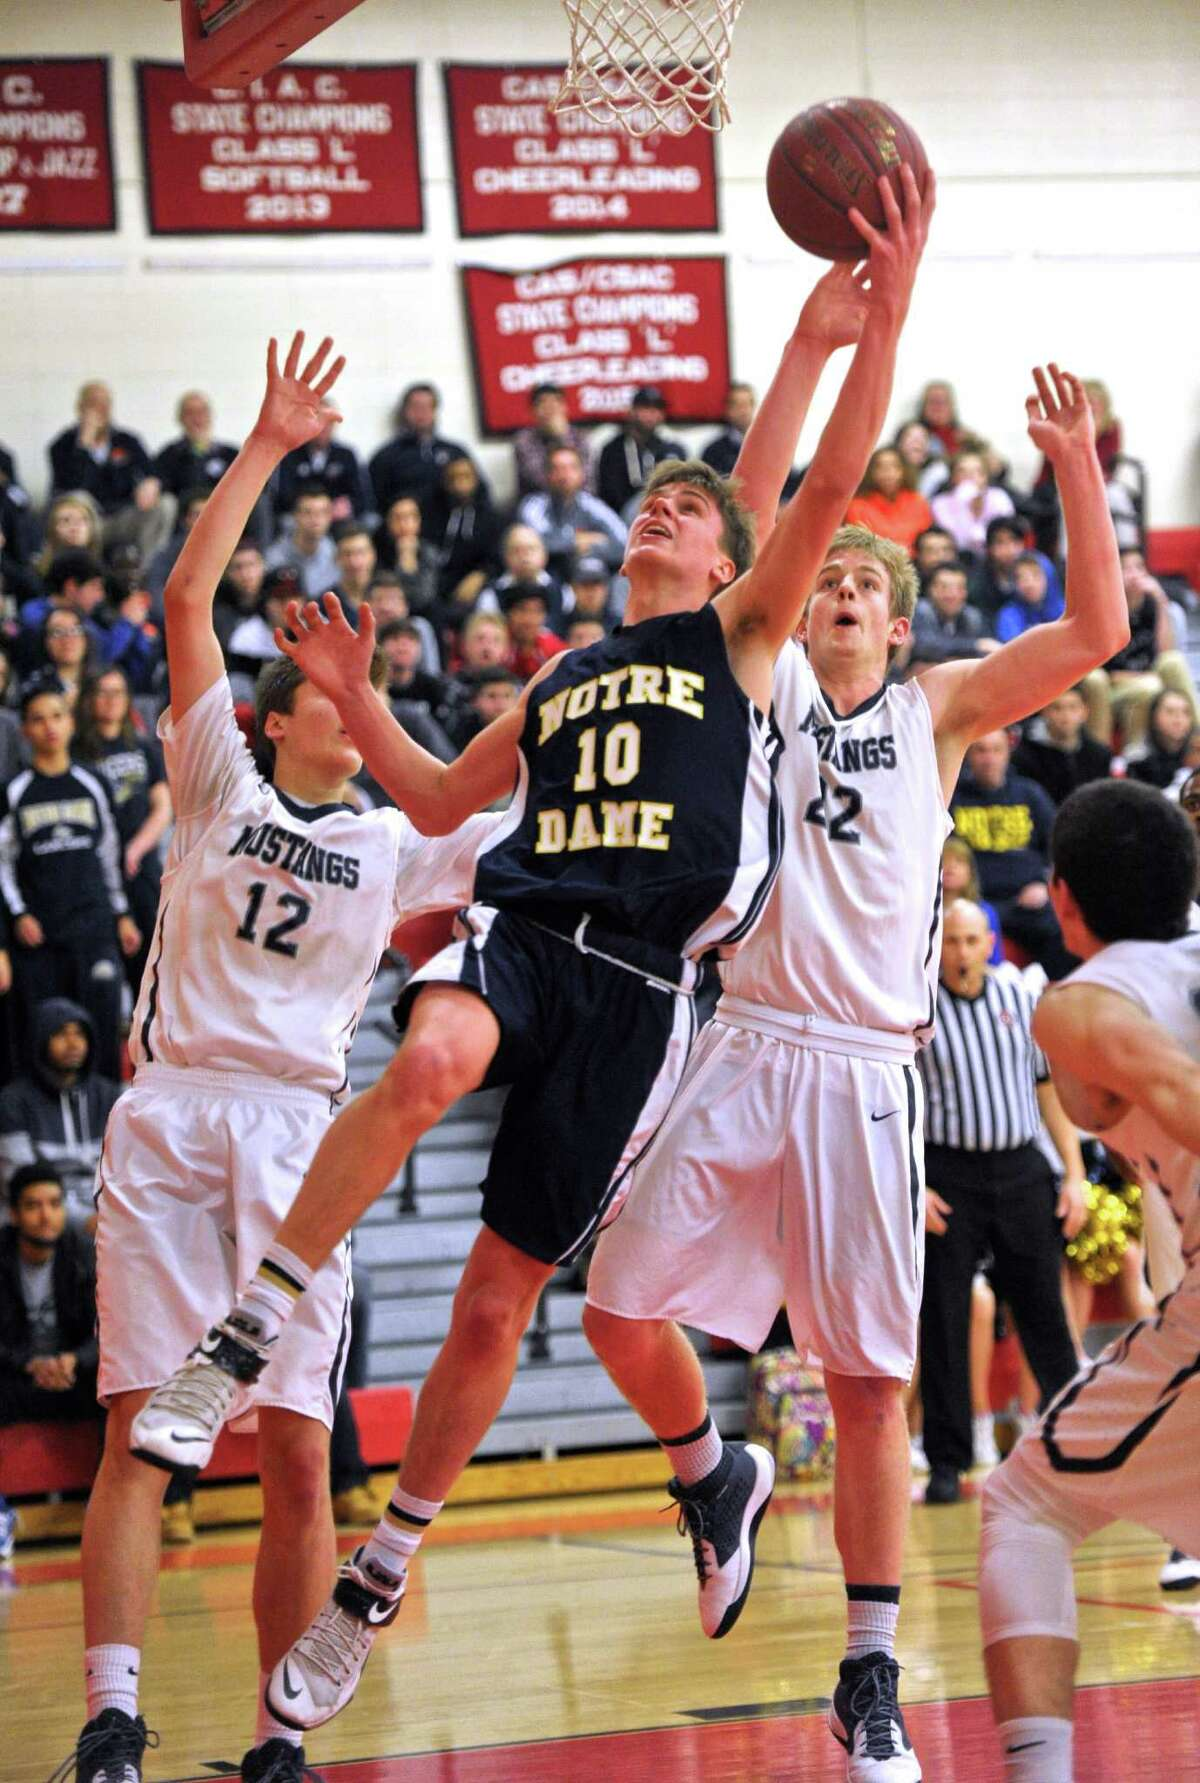 Notre Dame-Fairfield's Colin Burke (10) splits Immaculate's Alex Gerbo (12) and William Hatcher (22) on his way to the basket in the SWC boys basketball championship game between Immaculate and Notre Dame-Fairfield high schools on Thursday night March 3, 2016, at Masuk High School, Monroe, Conn.